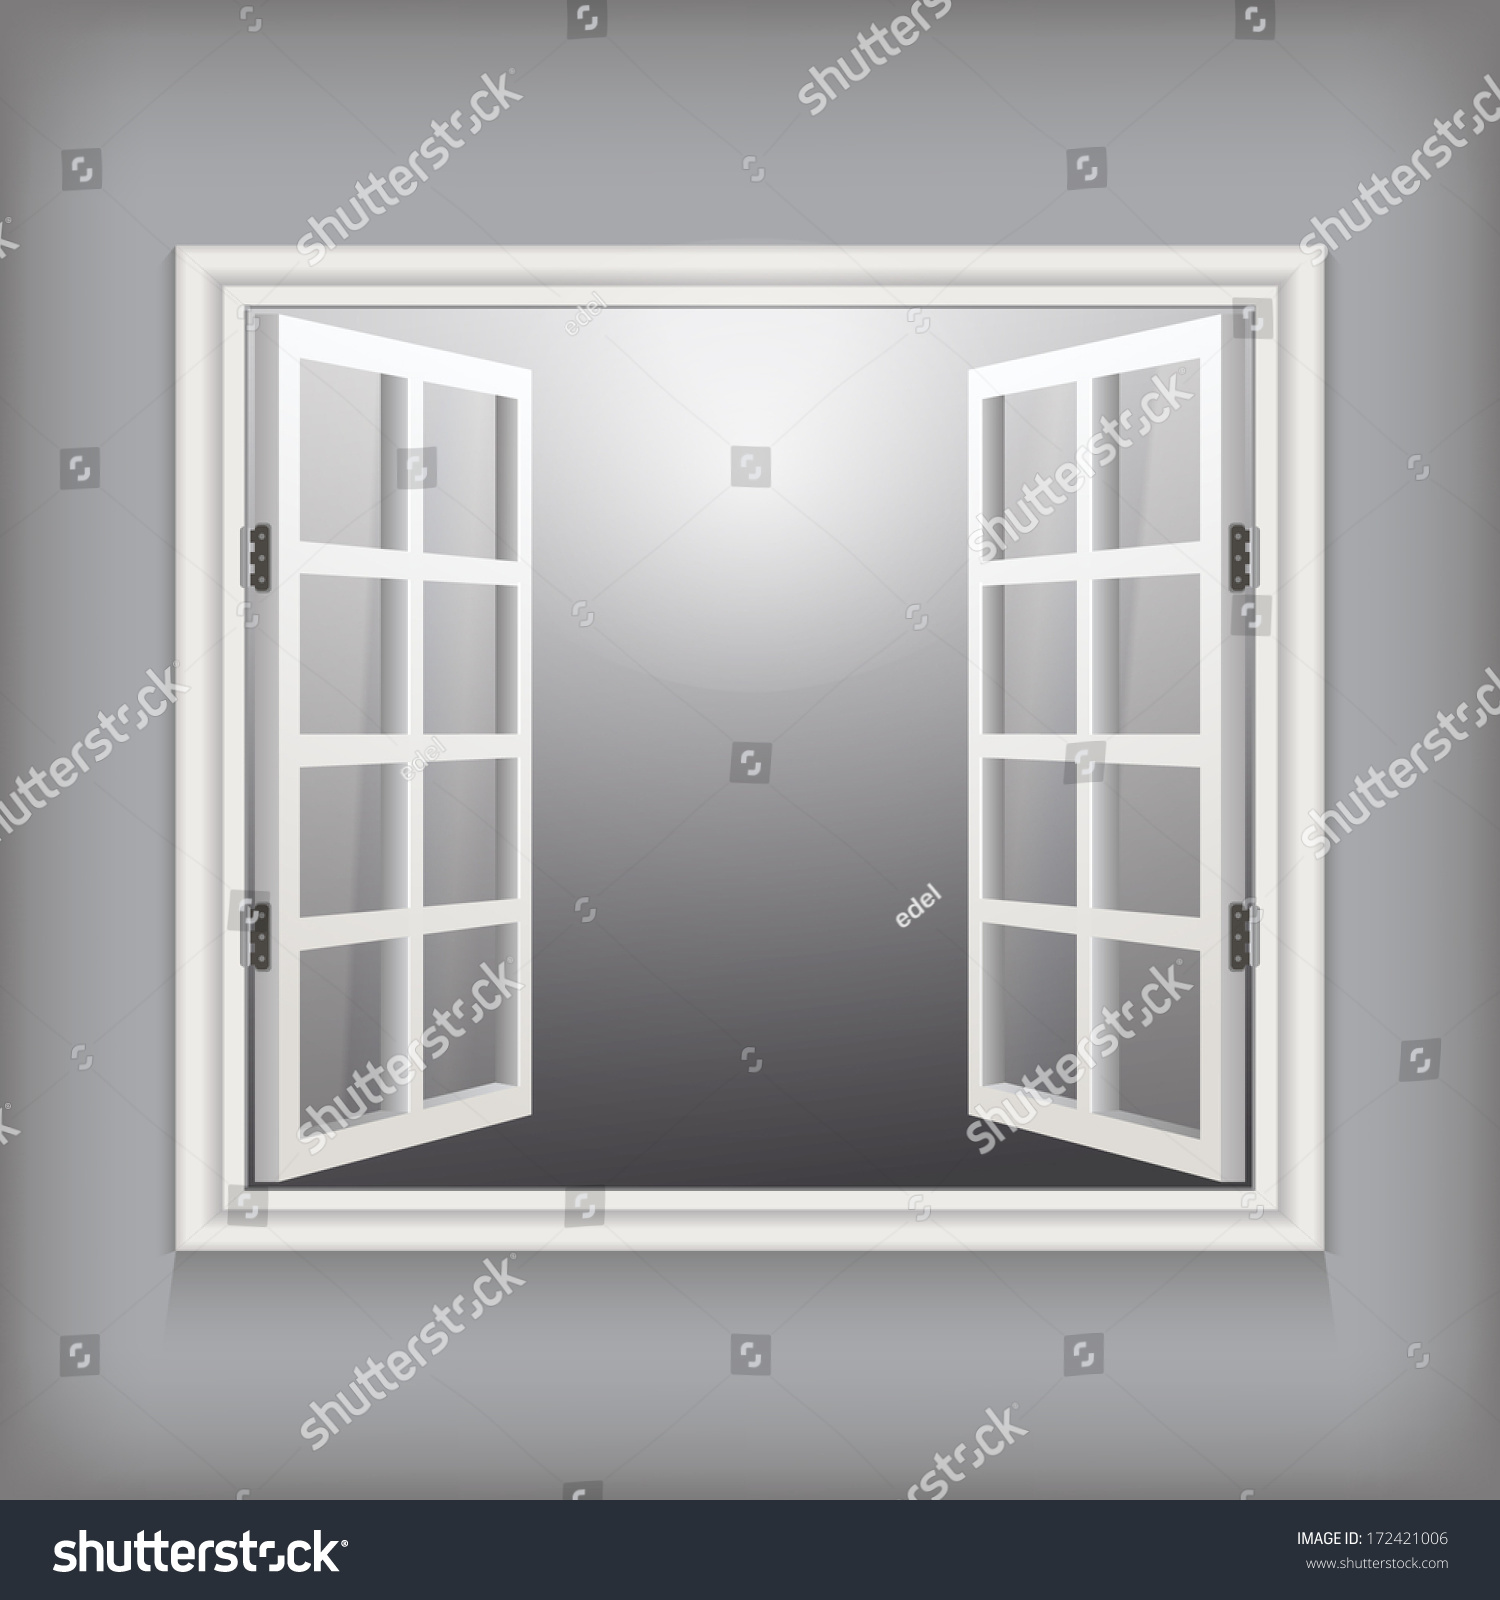 Open window vector template design stock vector 172421006 for Window design template